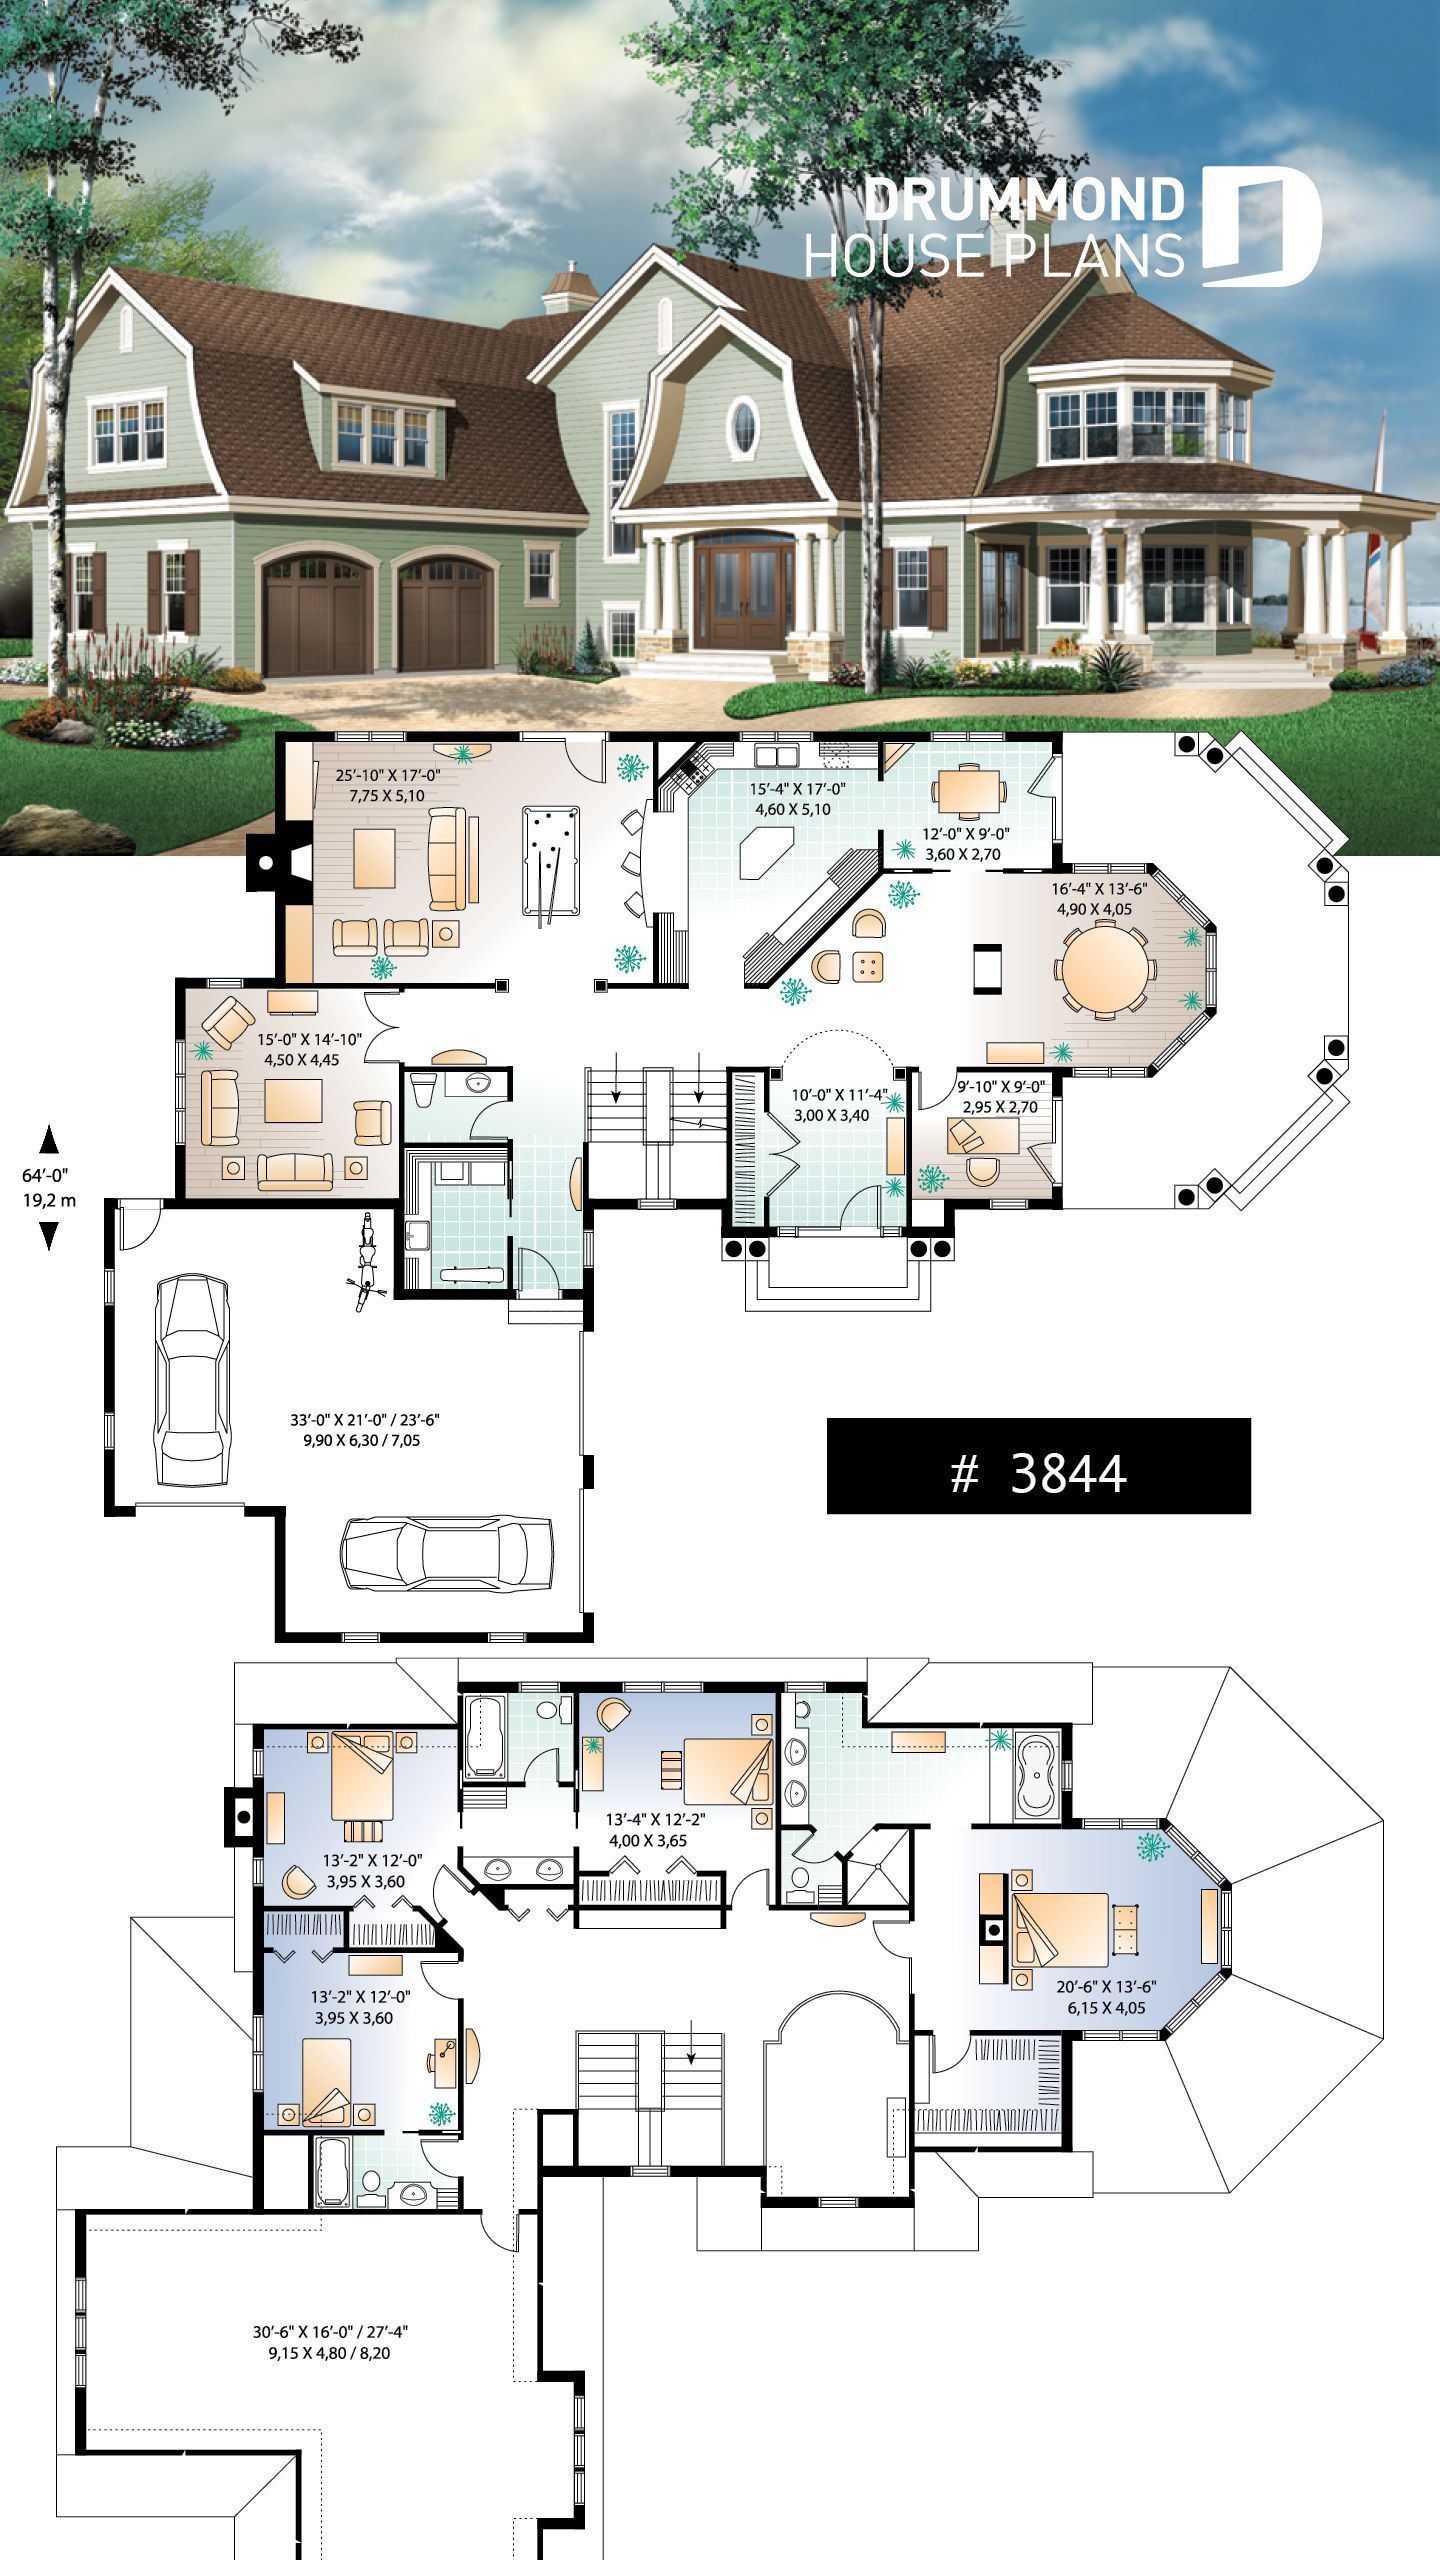 Pin By Auto On House Ideas In 2020 House Plans Sims House Design Sims House Plans